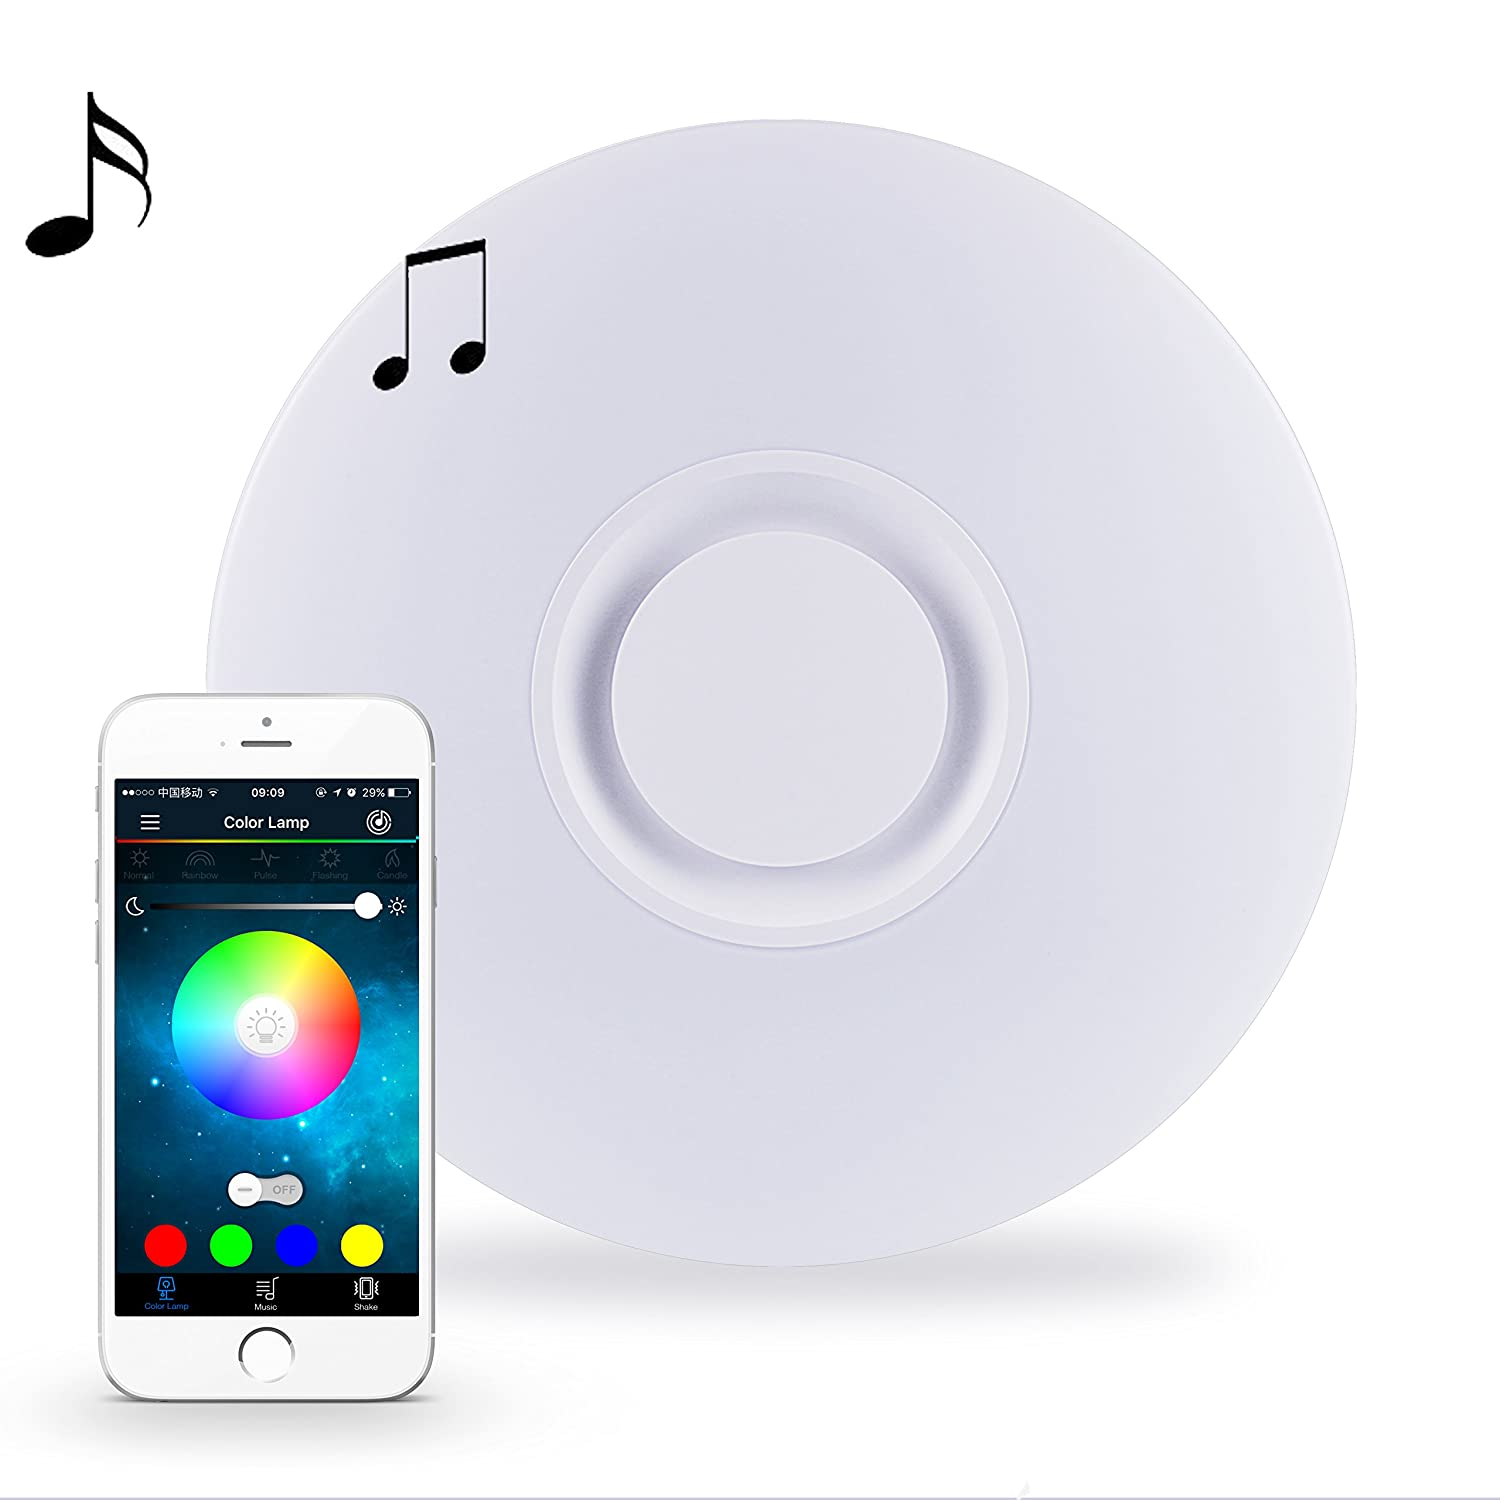 Semi flush mount ceiling light fixture with bluetooth speaker semi flush mount ceiling light fixture with bluetooth speaker horevo app remote control dimmable 24w 15 inch 6500k rgbw color change warmwhite arubaitofo Choice Image